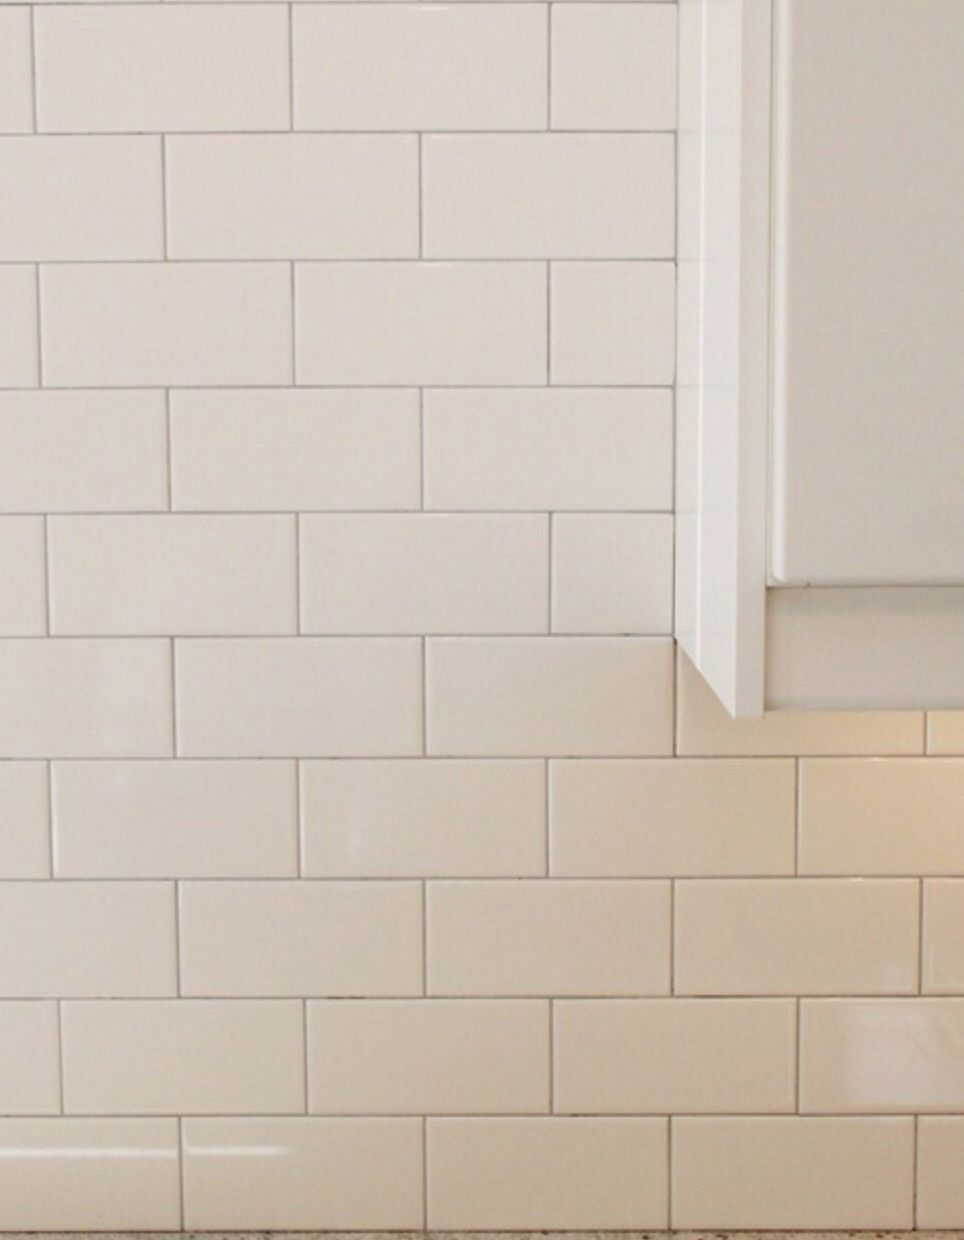 Pin By Judy Freedman On Small Bath Final Picks Grey Grout Girl Bathrooms White Subway Tile